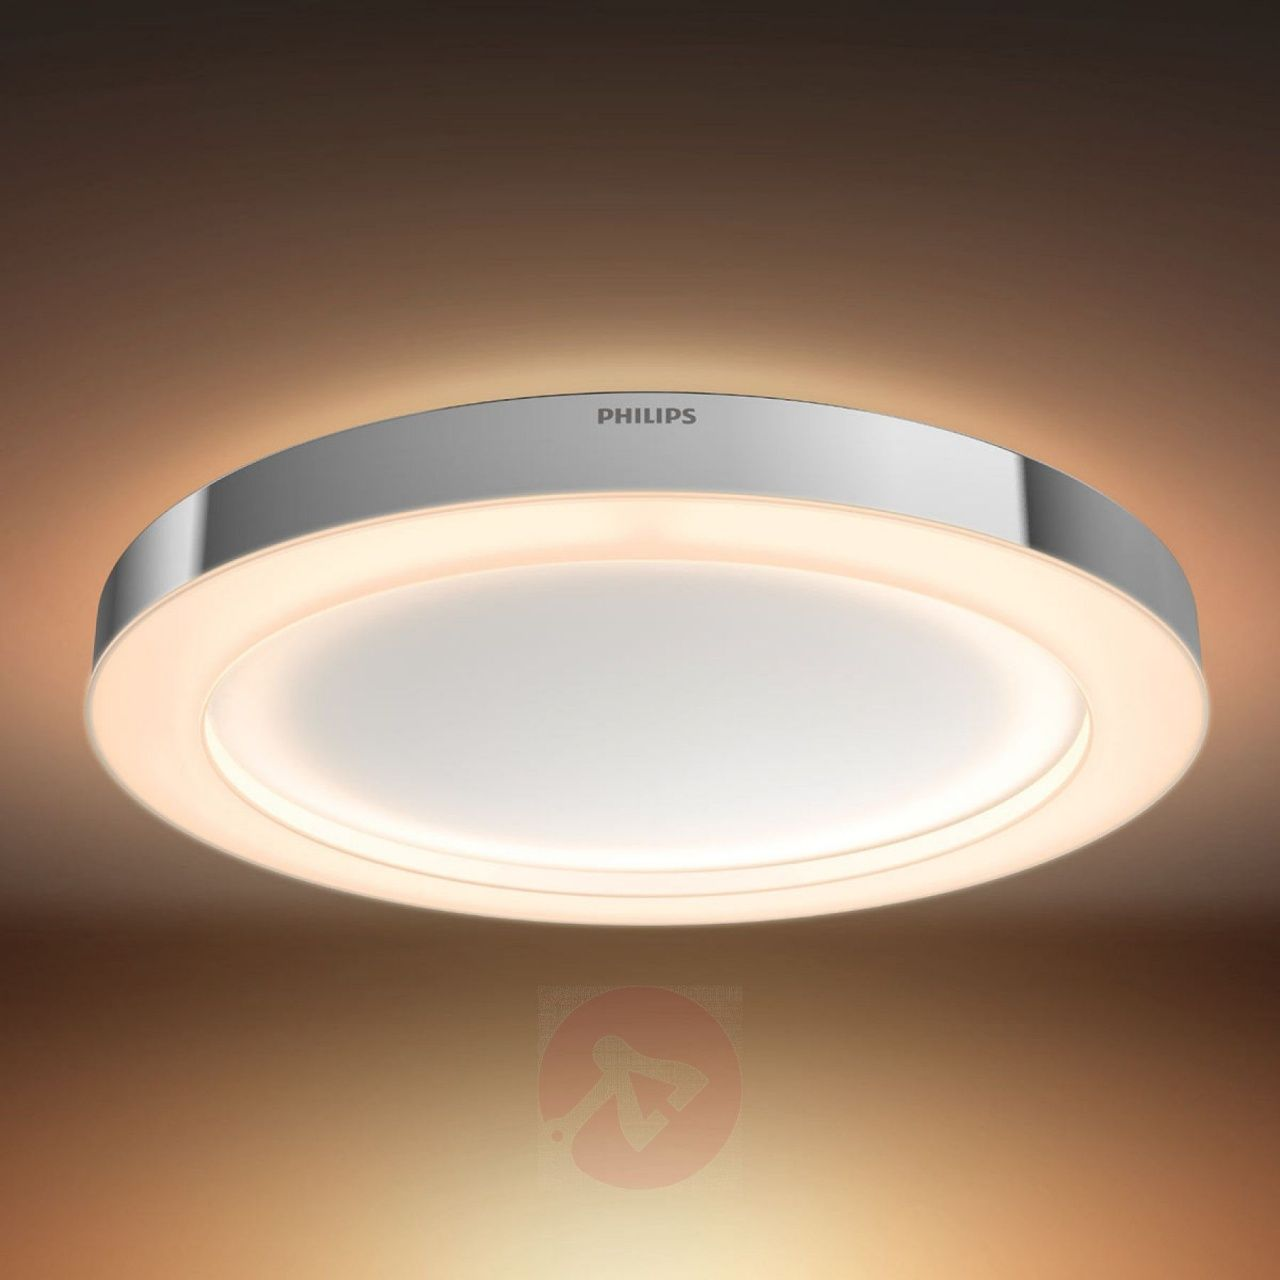 Battery Operated Ceiling Light With Remote Ceiling Lights Led Ceiling Lights Led Ceiling